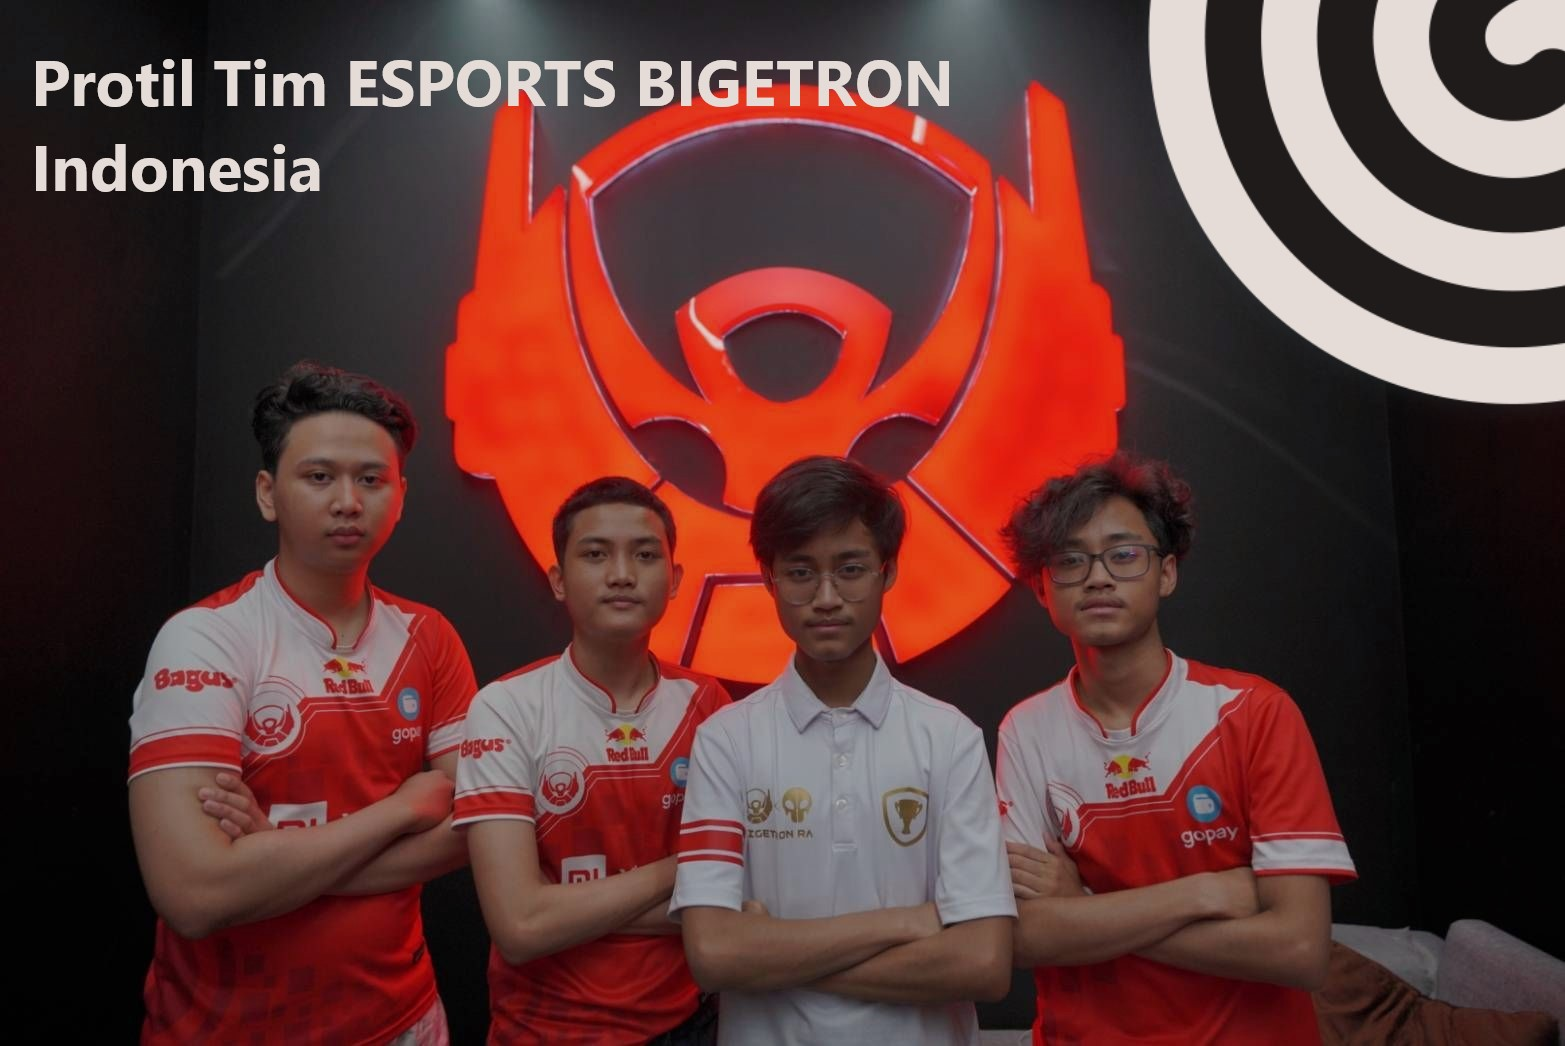 Protil Tim ESPORTS BIGETRON Indonesia